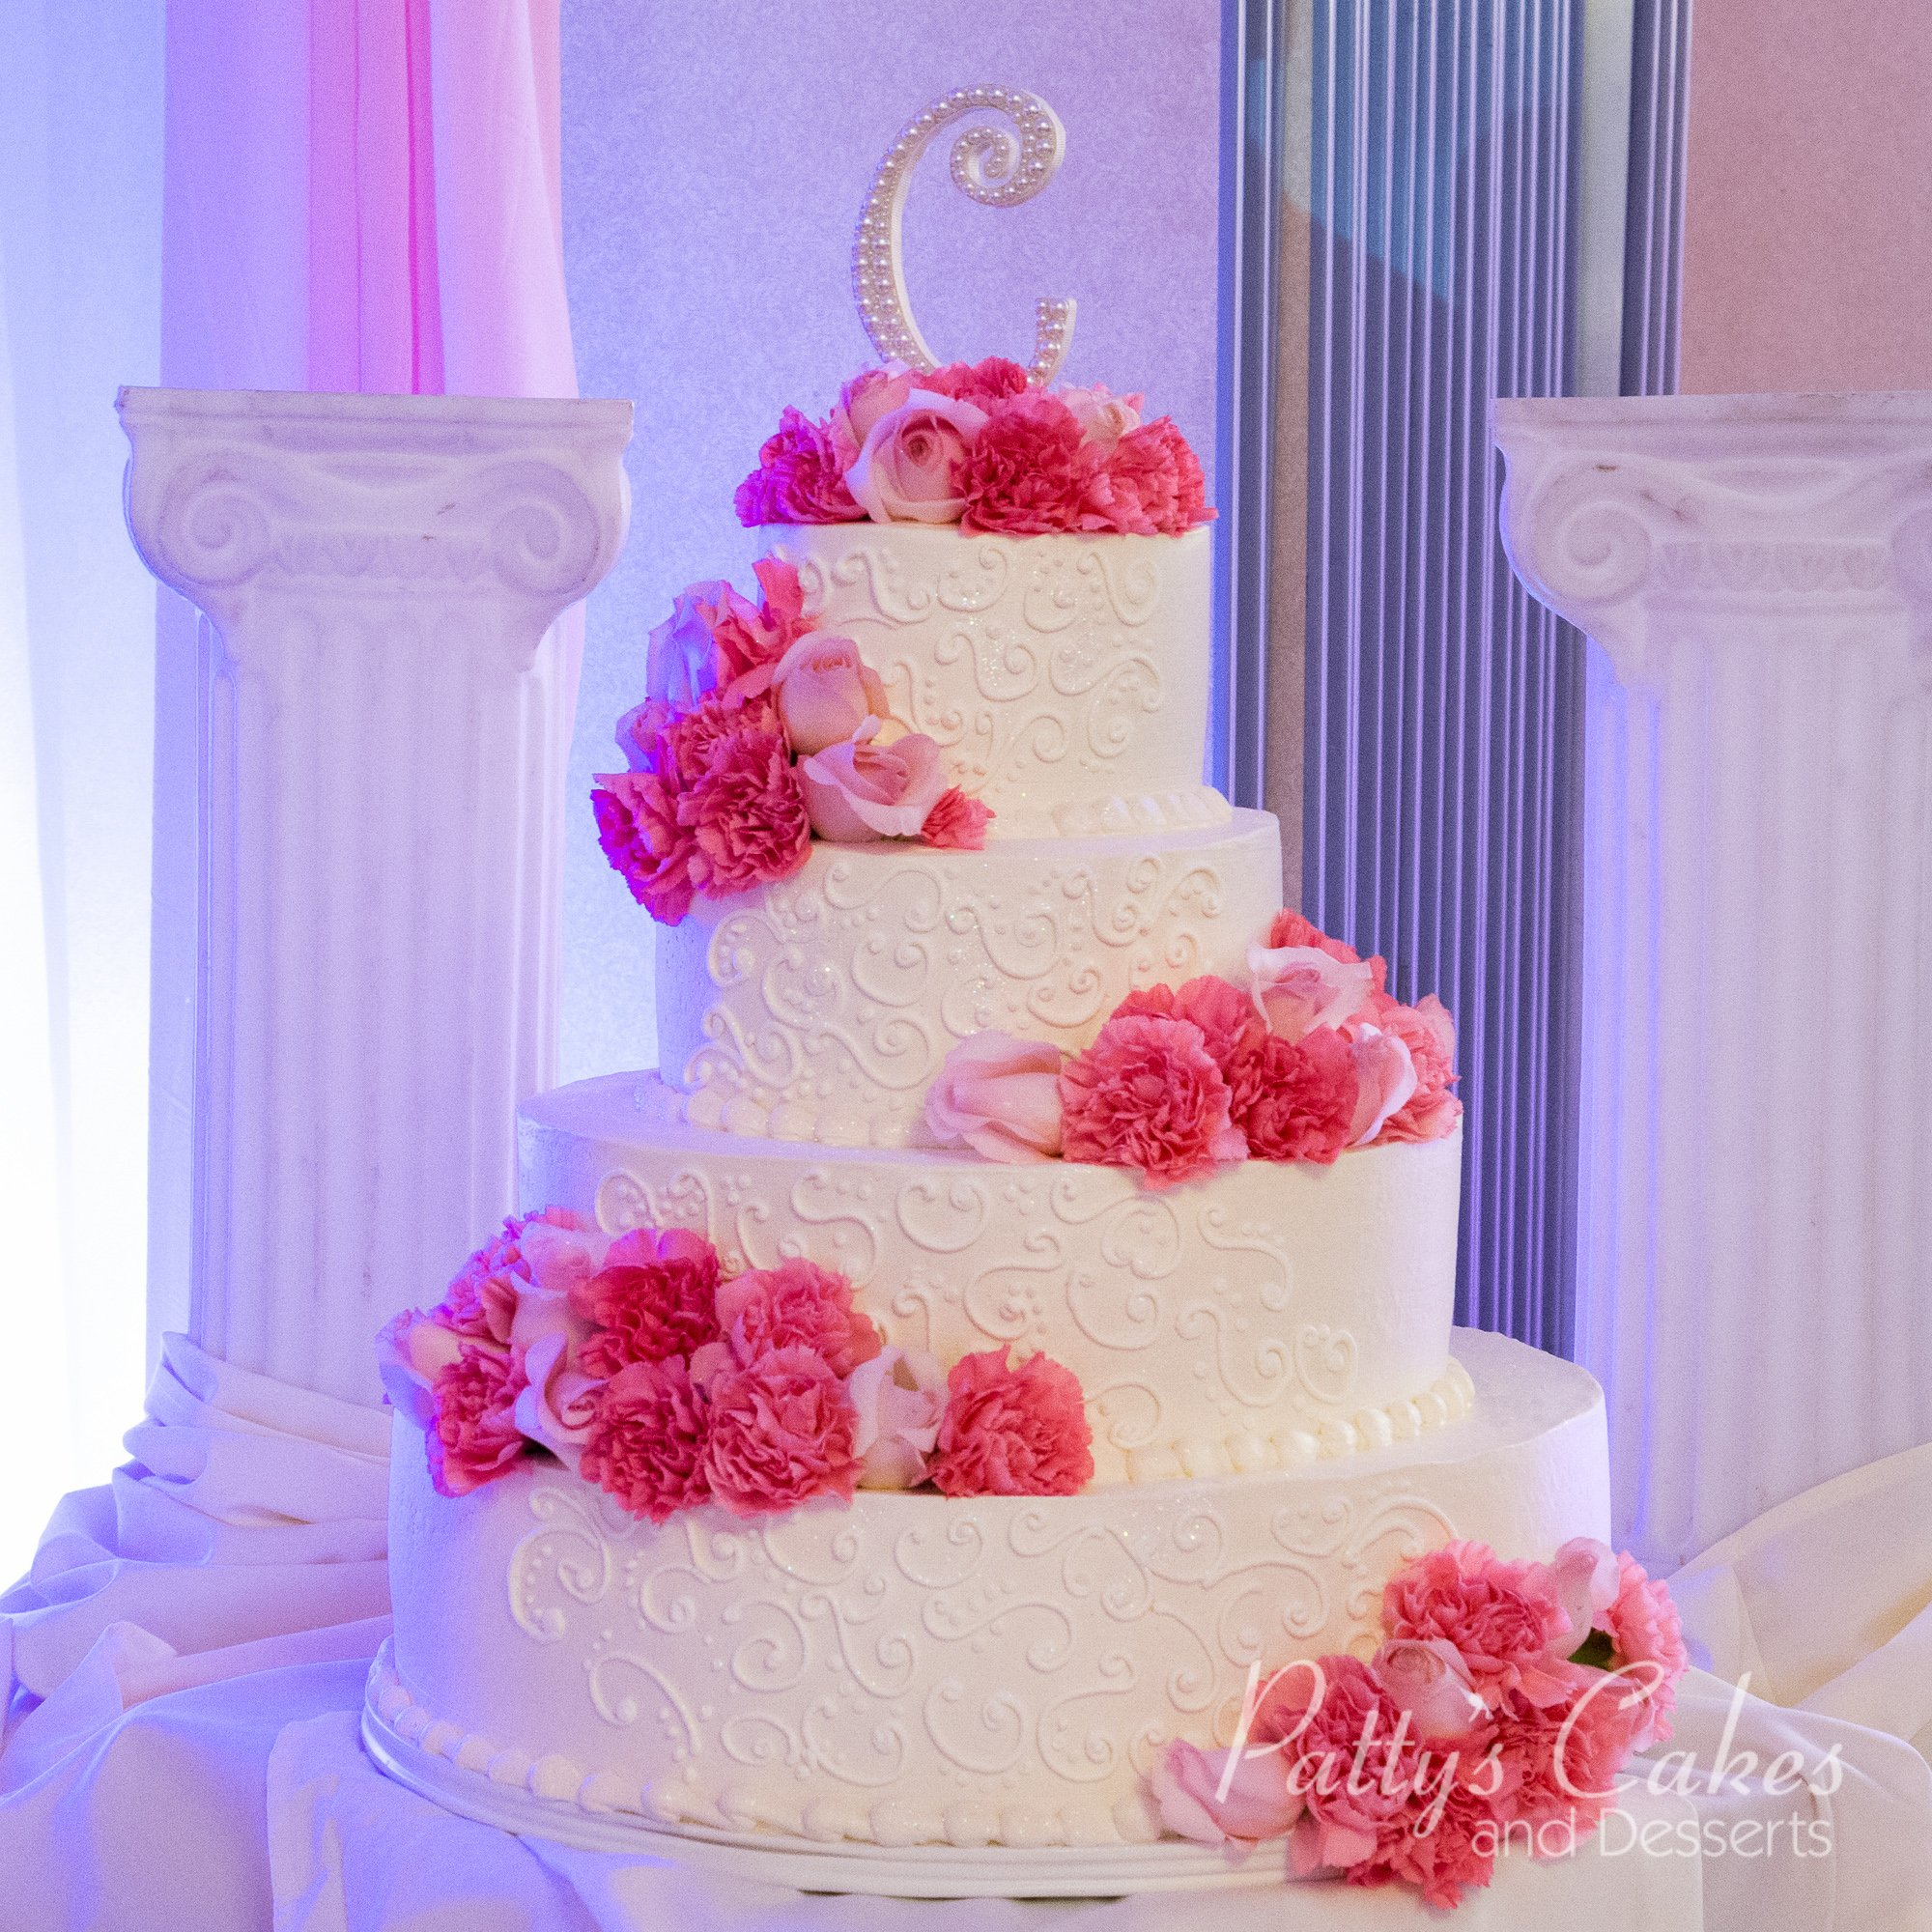 pink-red-flowers-wedding-cake